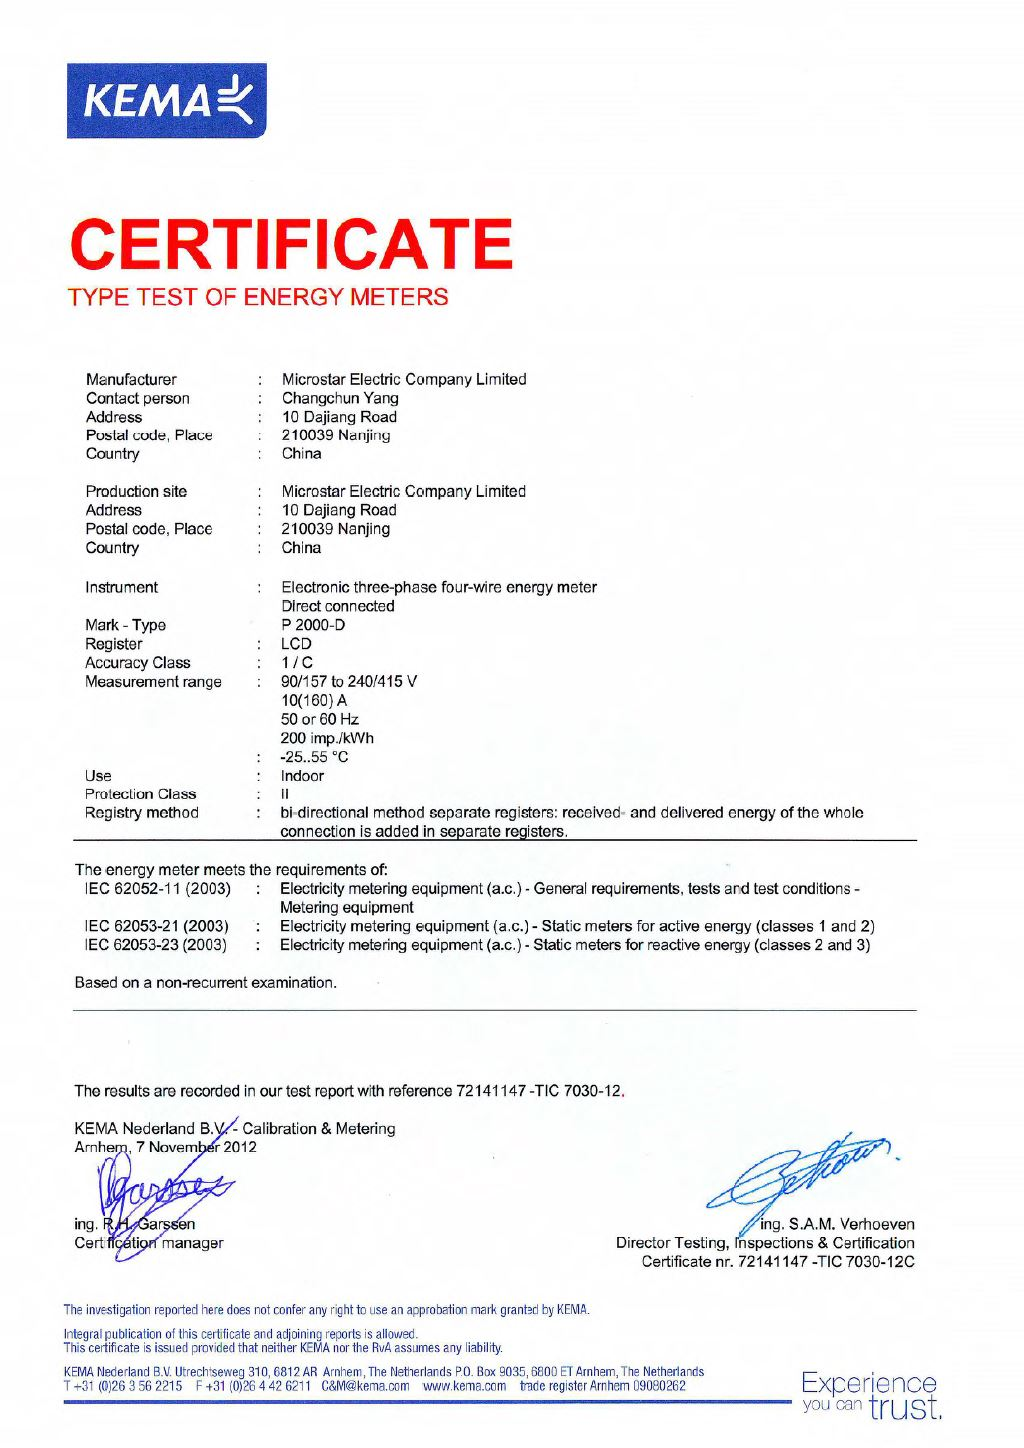 P2000-D IEC Type Test Certificate by KEMA